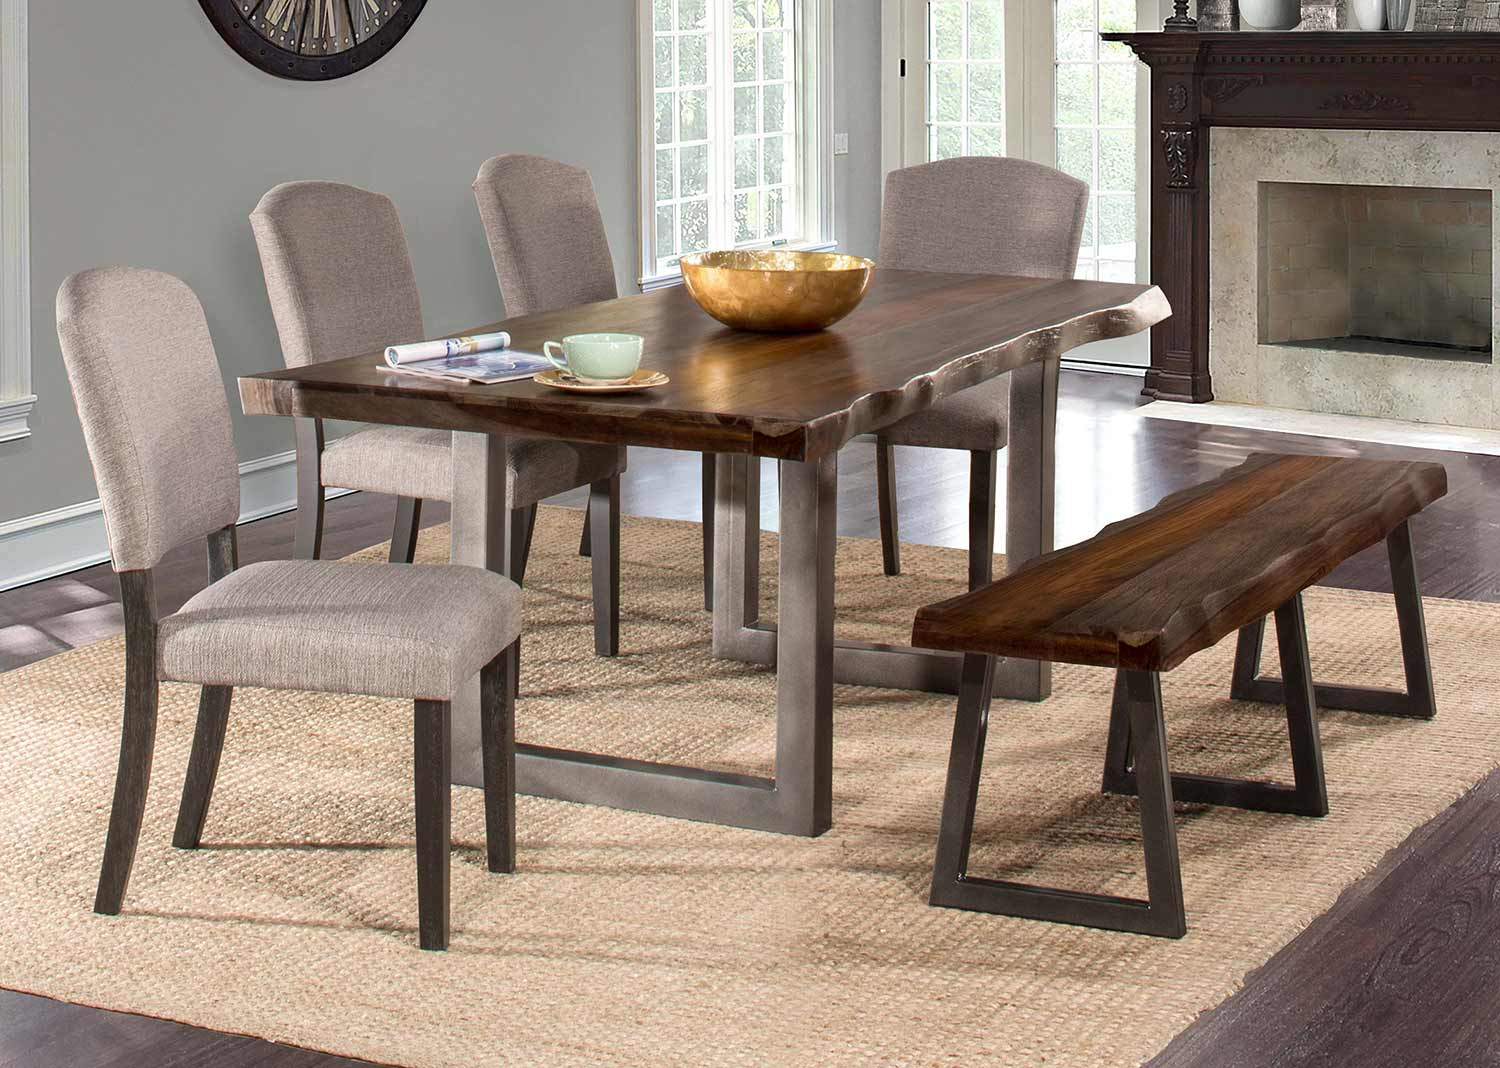 Hillsdale Emerson 6 Piece Rectangle Dining Set With One Bench And Four Chairs Gray Sheesham